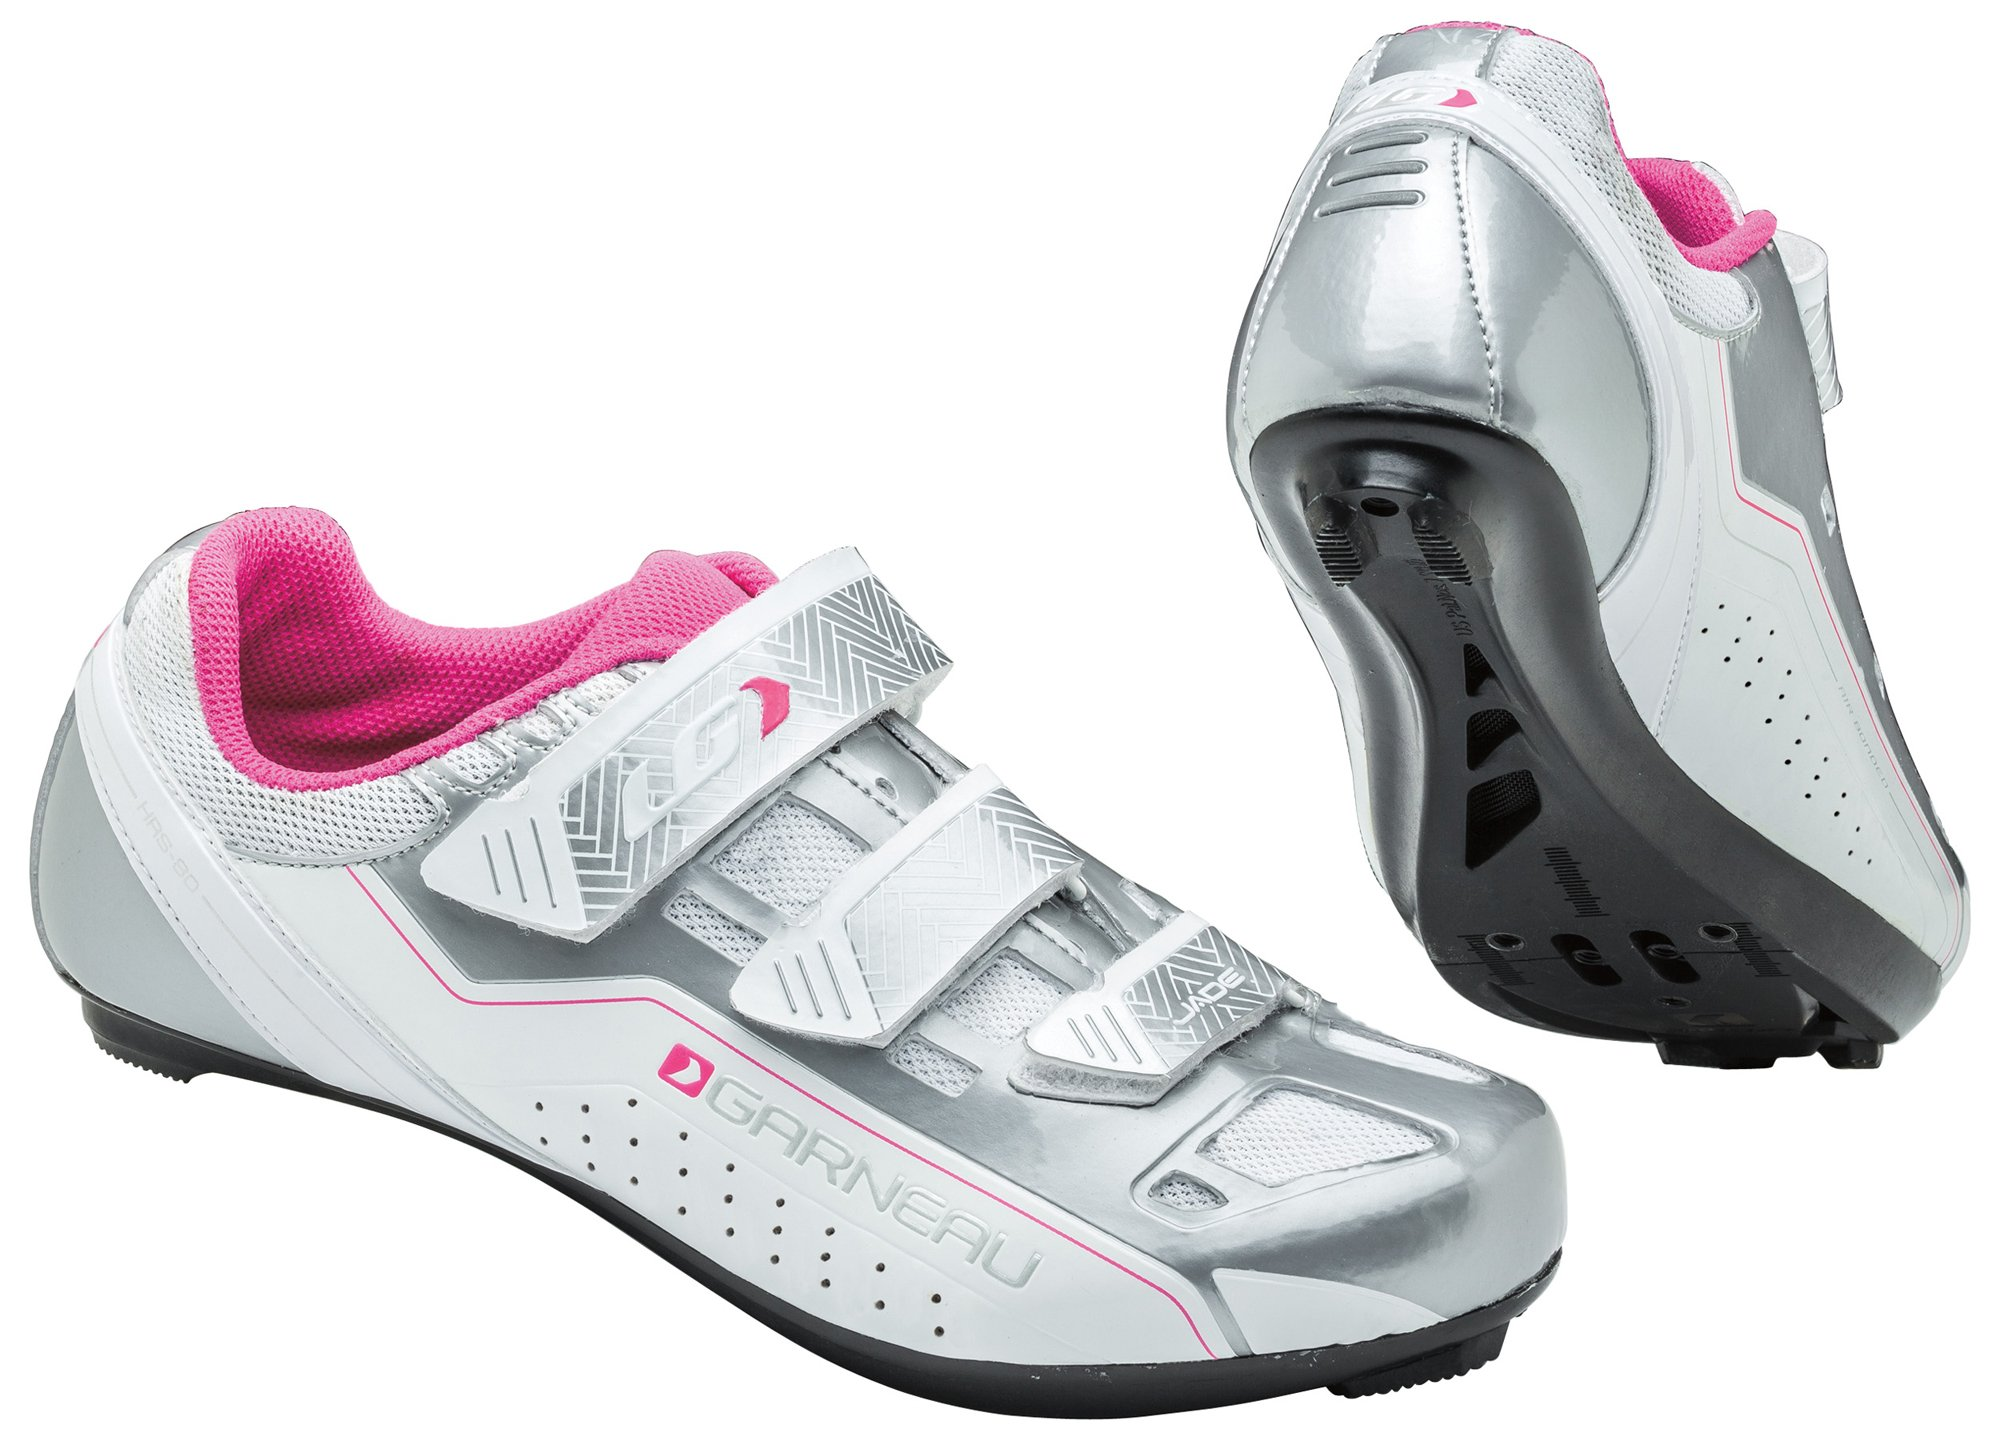 Louis Garneau - Women's Jade Bike Shoes, Drizzle, 39